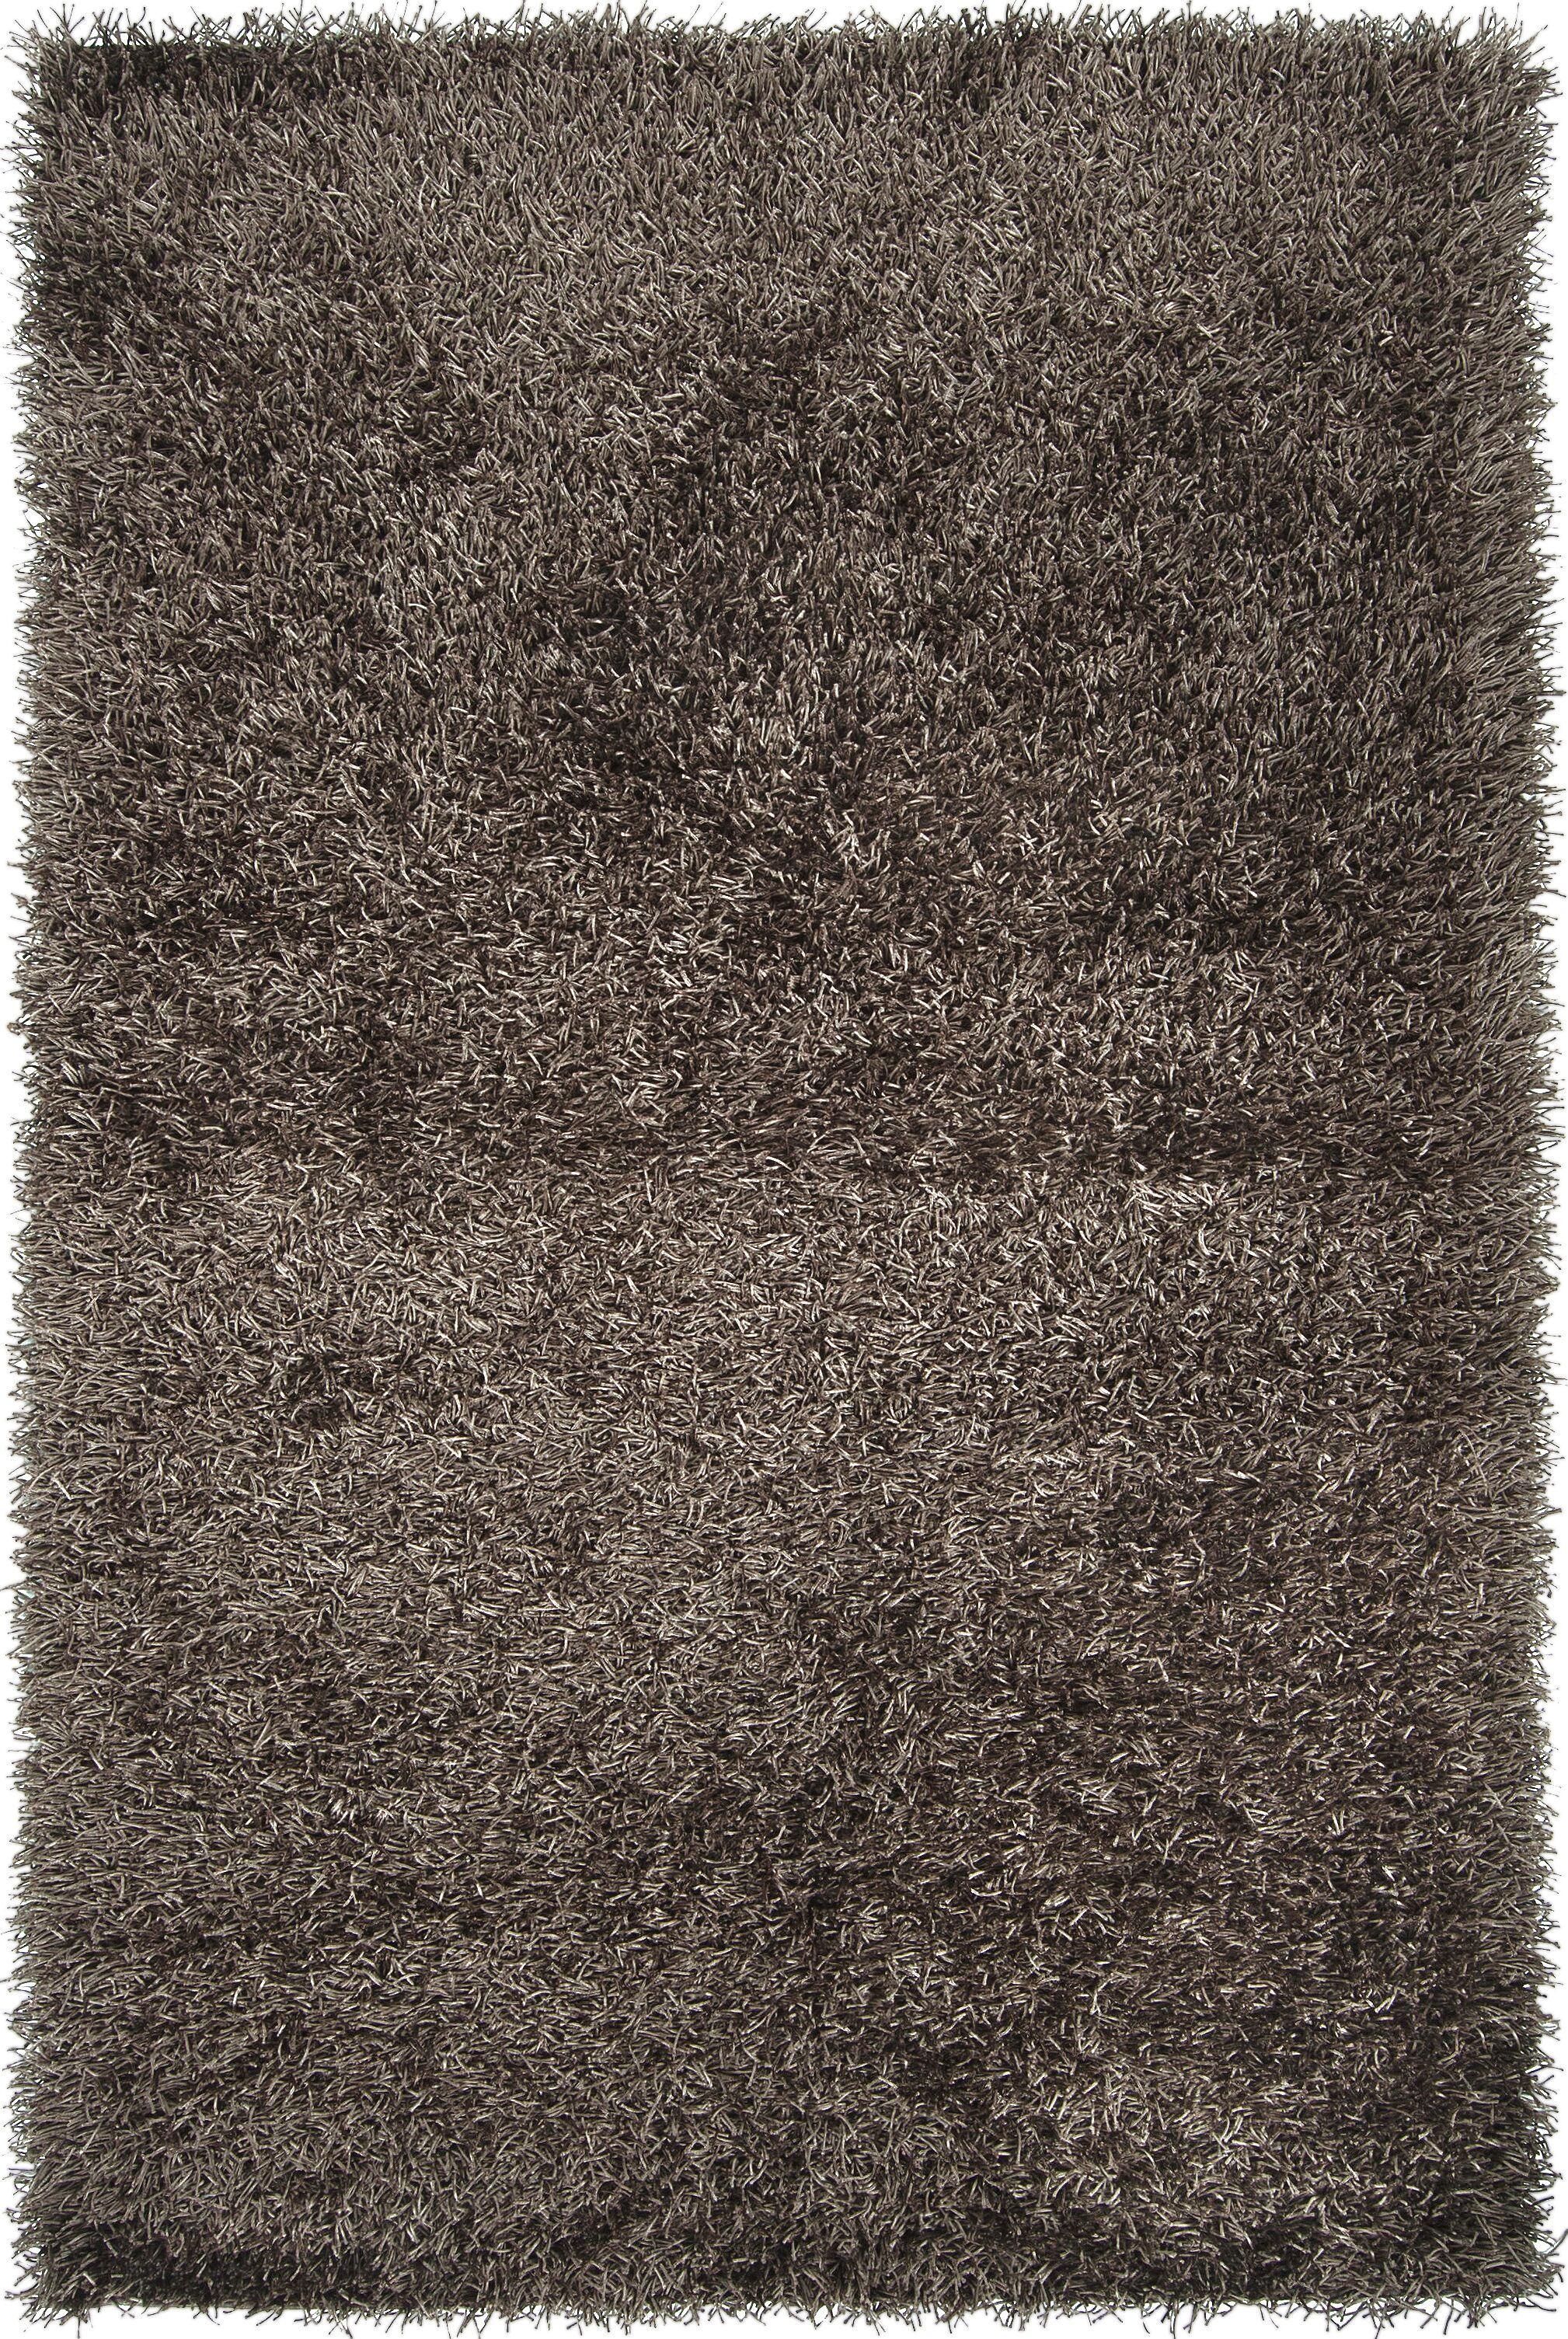 Bonomo Light Gray Area Rug Rug Size: Rectangle 5' x 8'